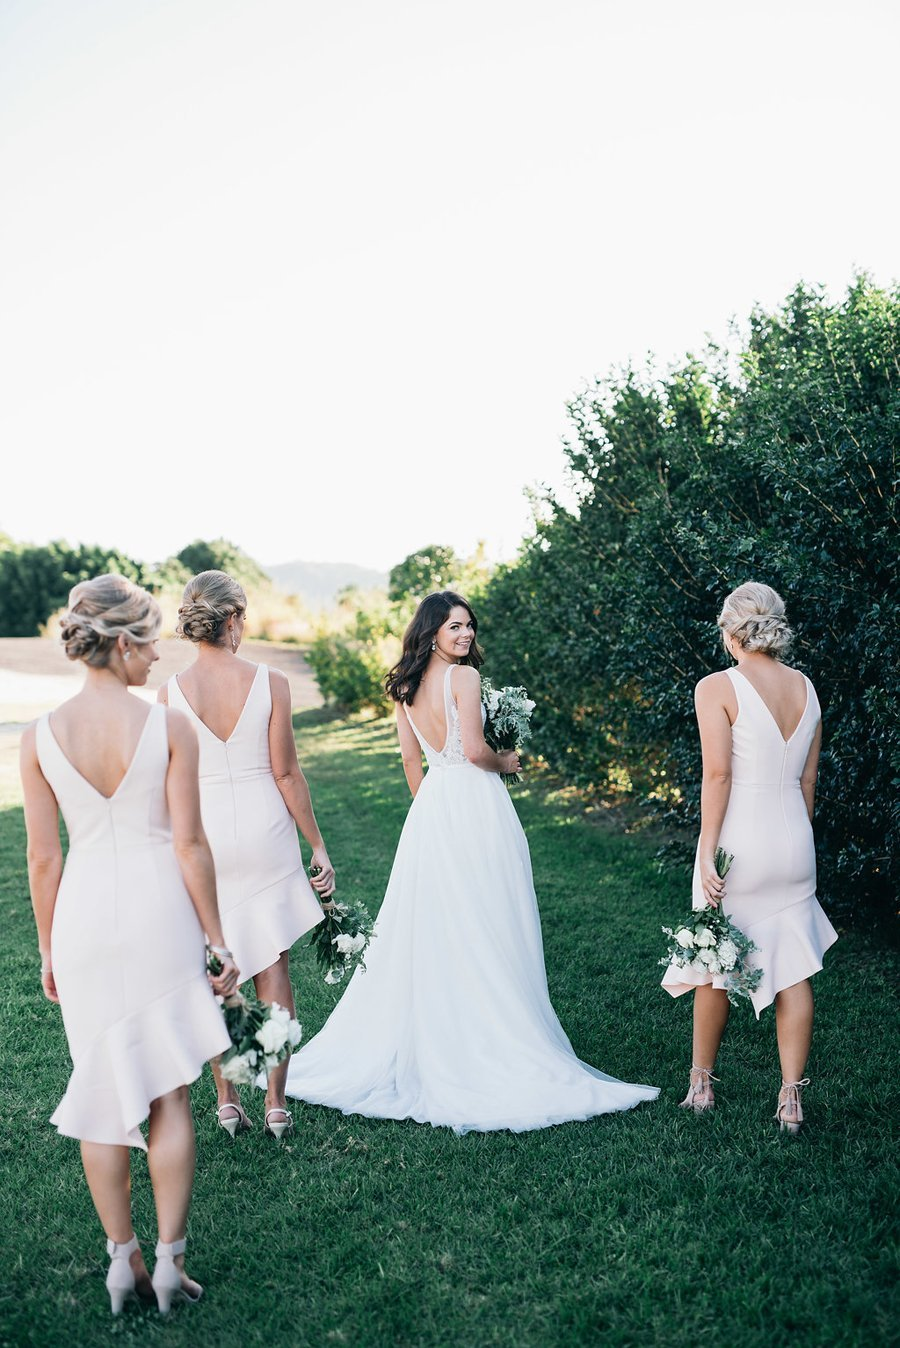 Summer Weddings on the Tweed Coast